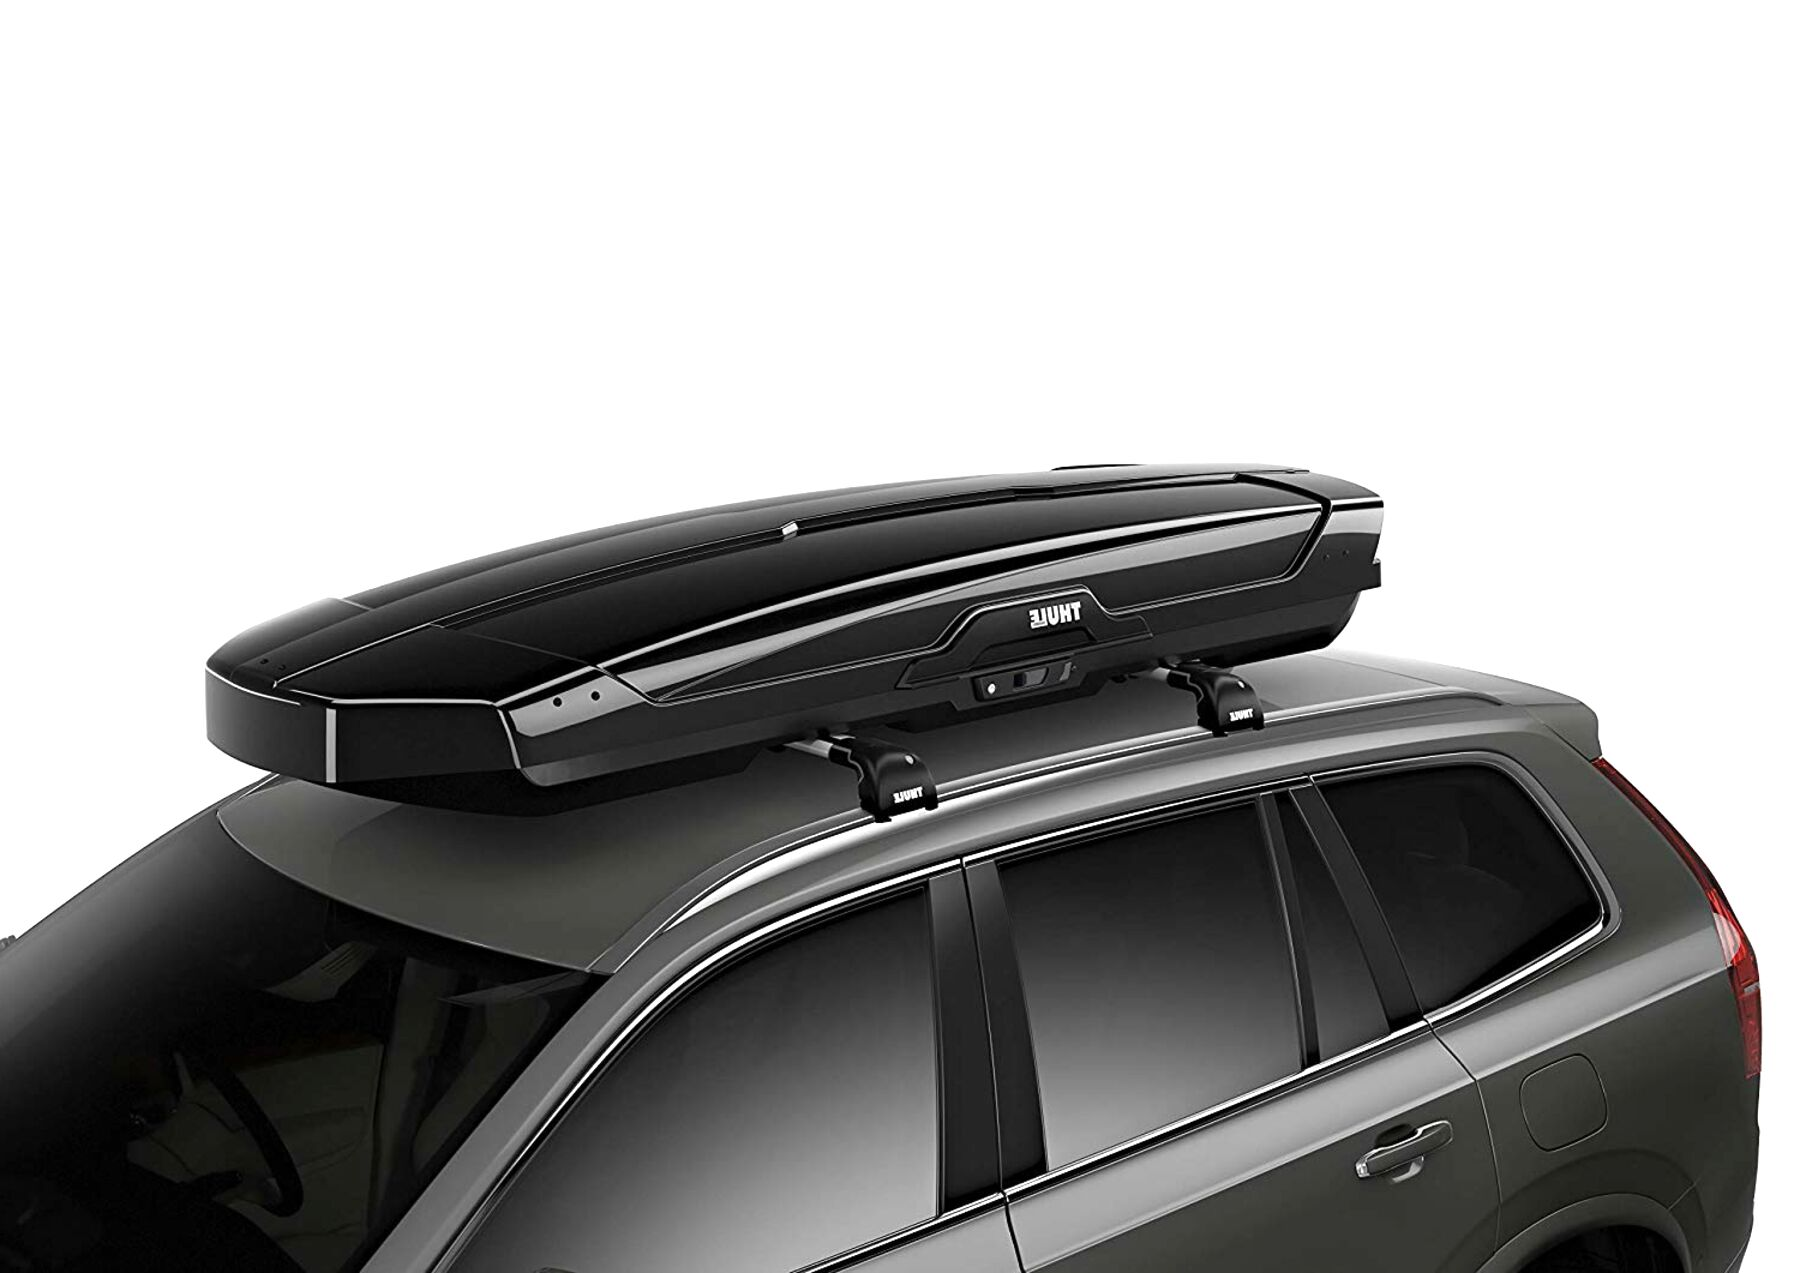 roof box black for sale